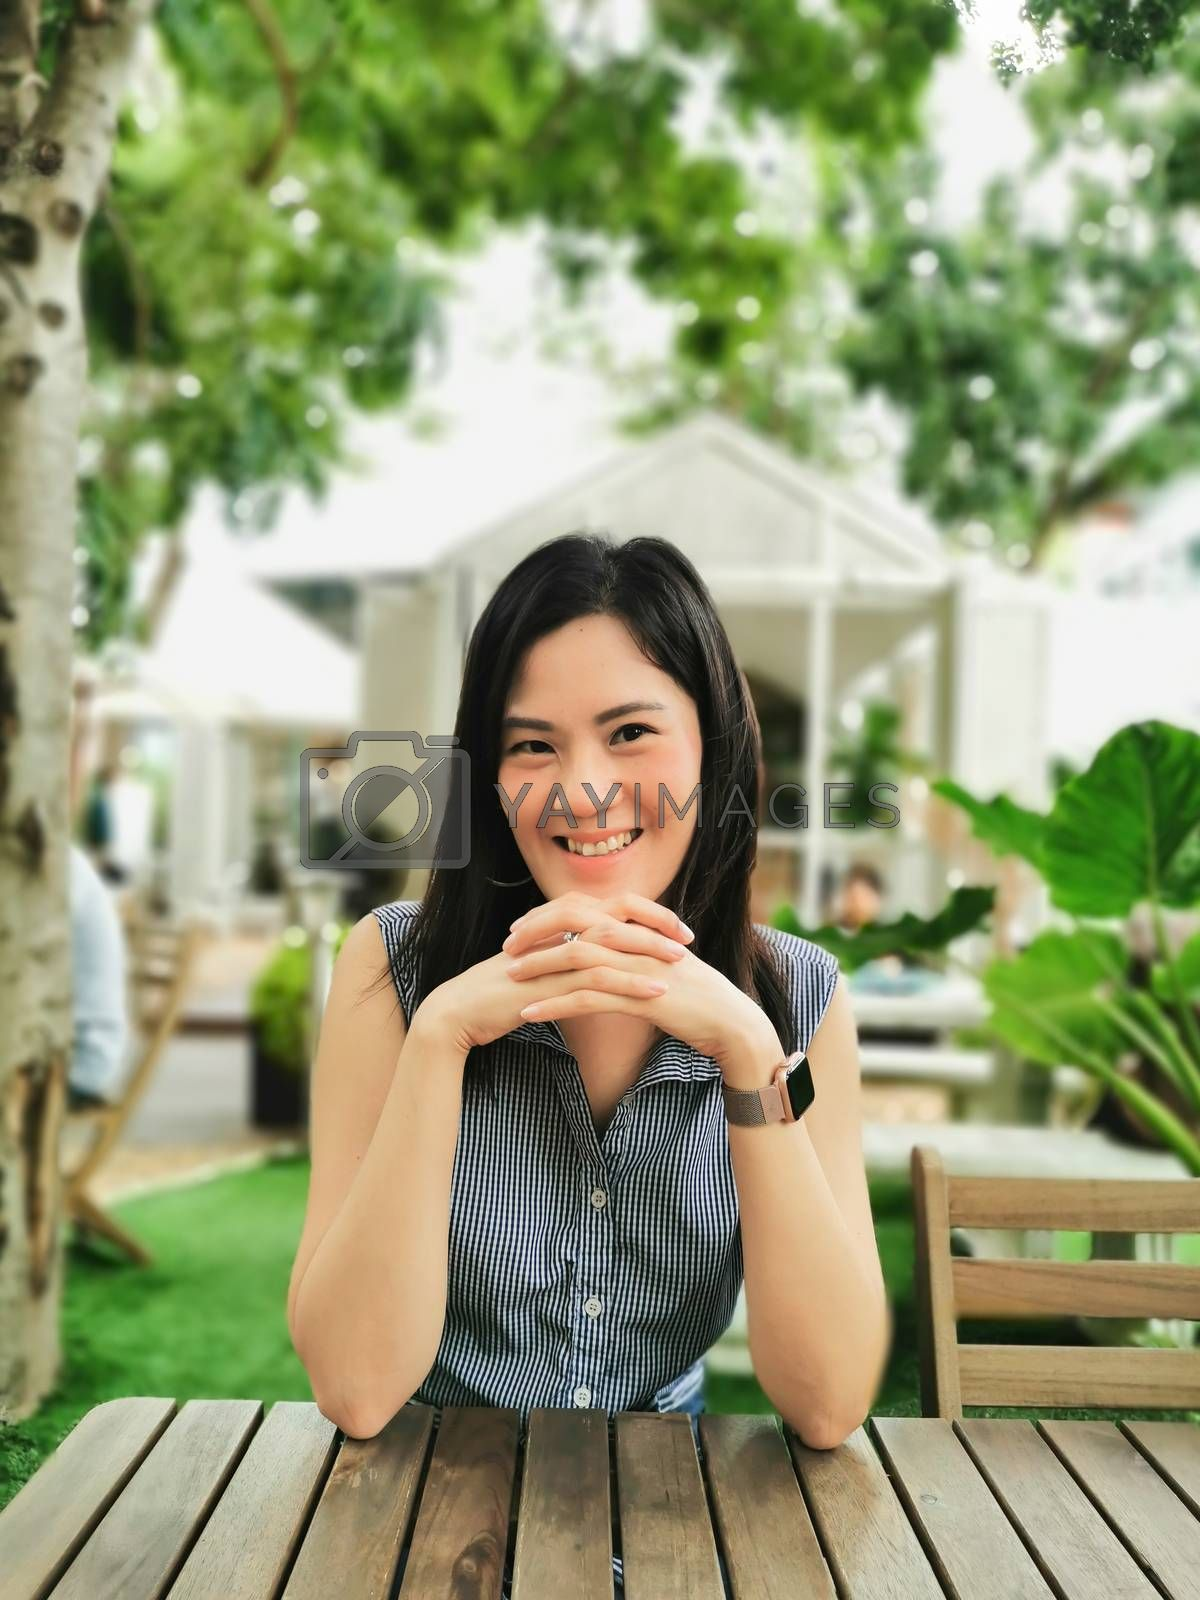 An Asian woman feeling happy and smiling in the garden